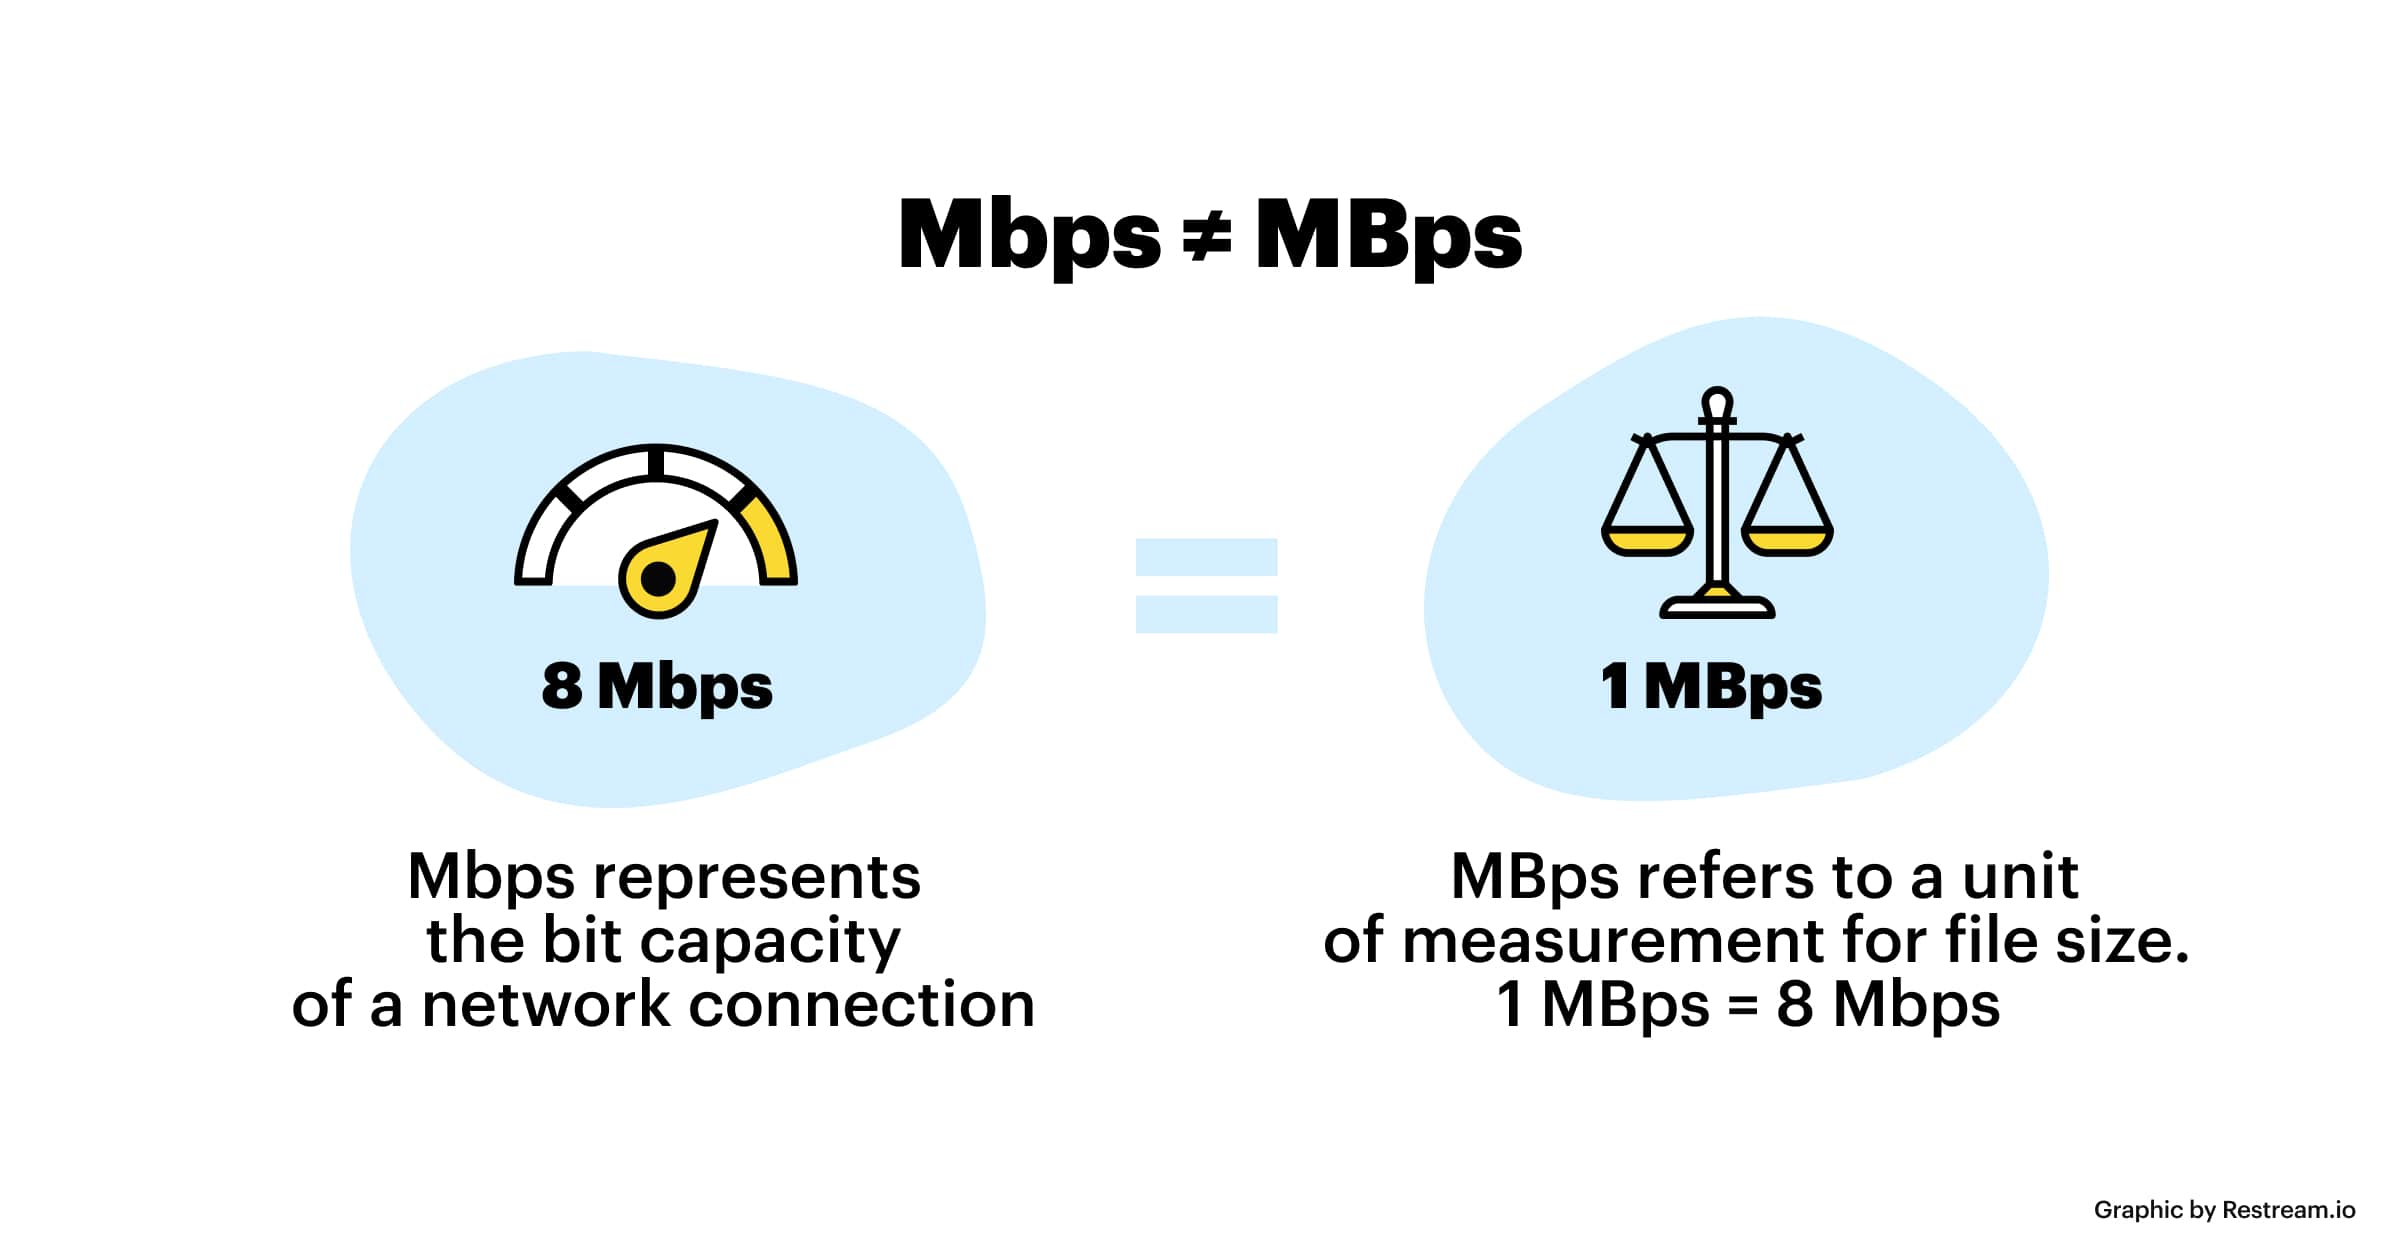 Avoid mixing up Mbps and MBps, which mean different things